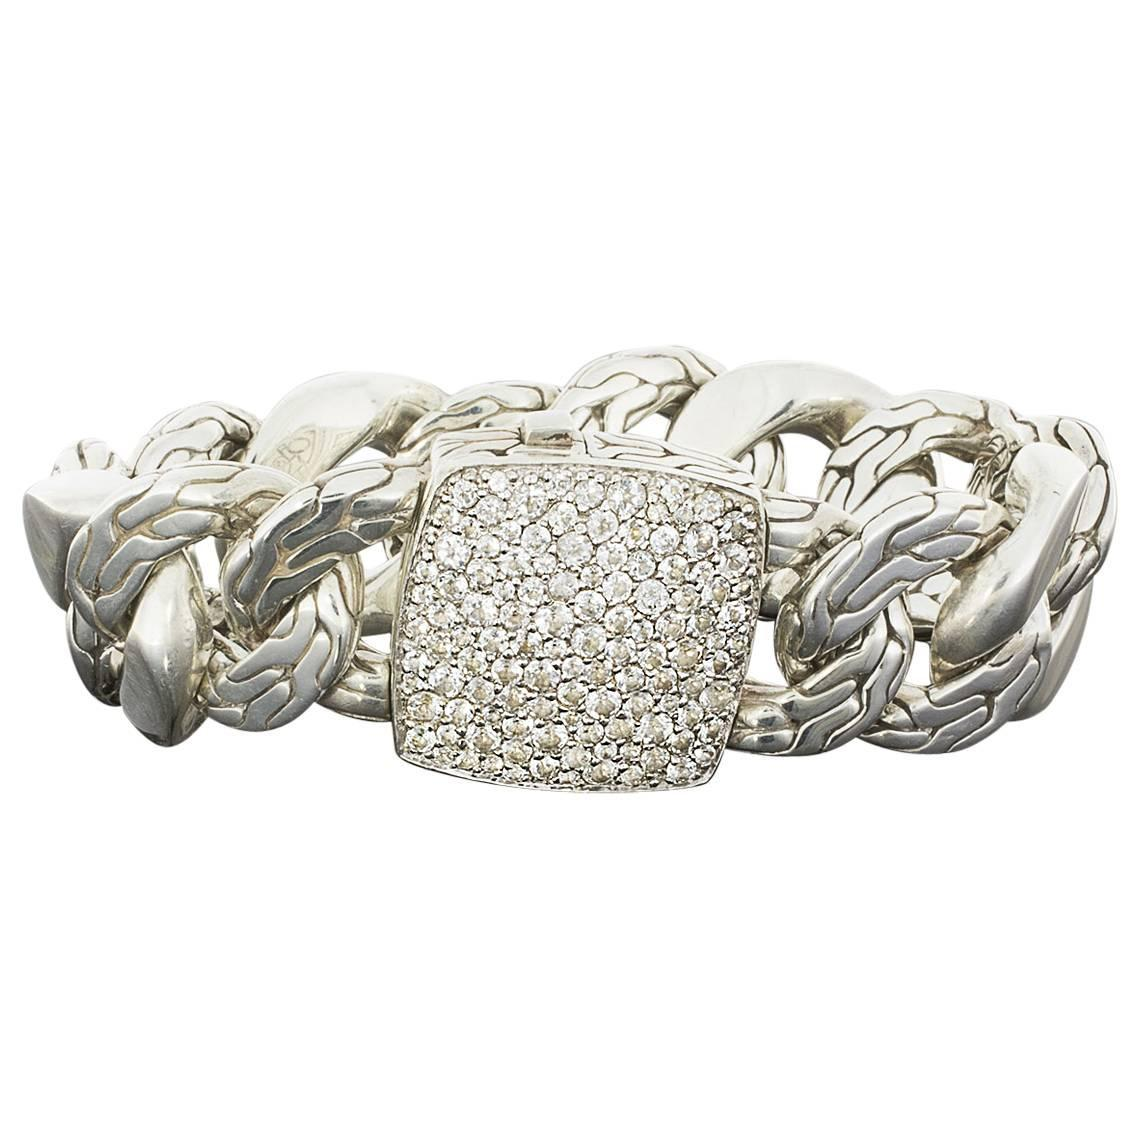 John hardy silver wide curb link bracelet with pave cubic for John hardy jewelry factory bali